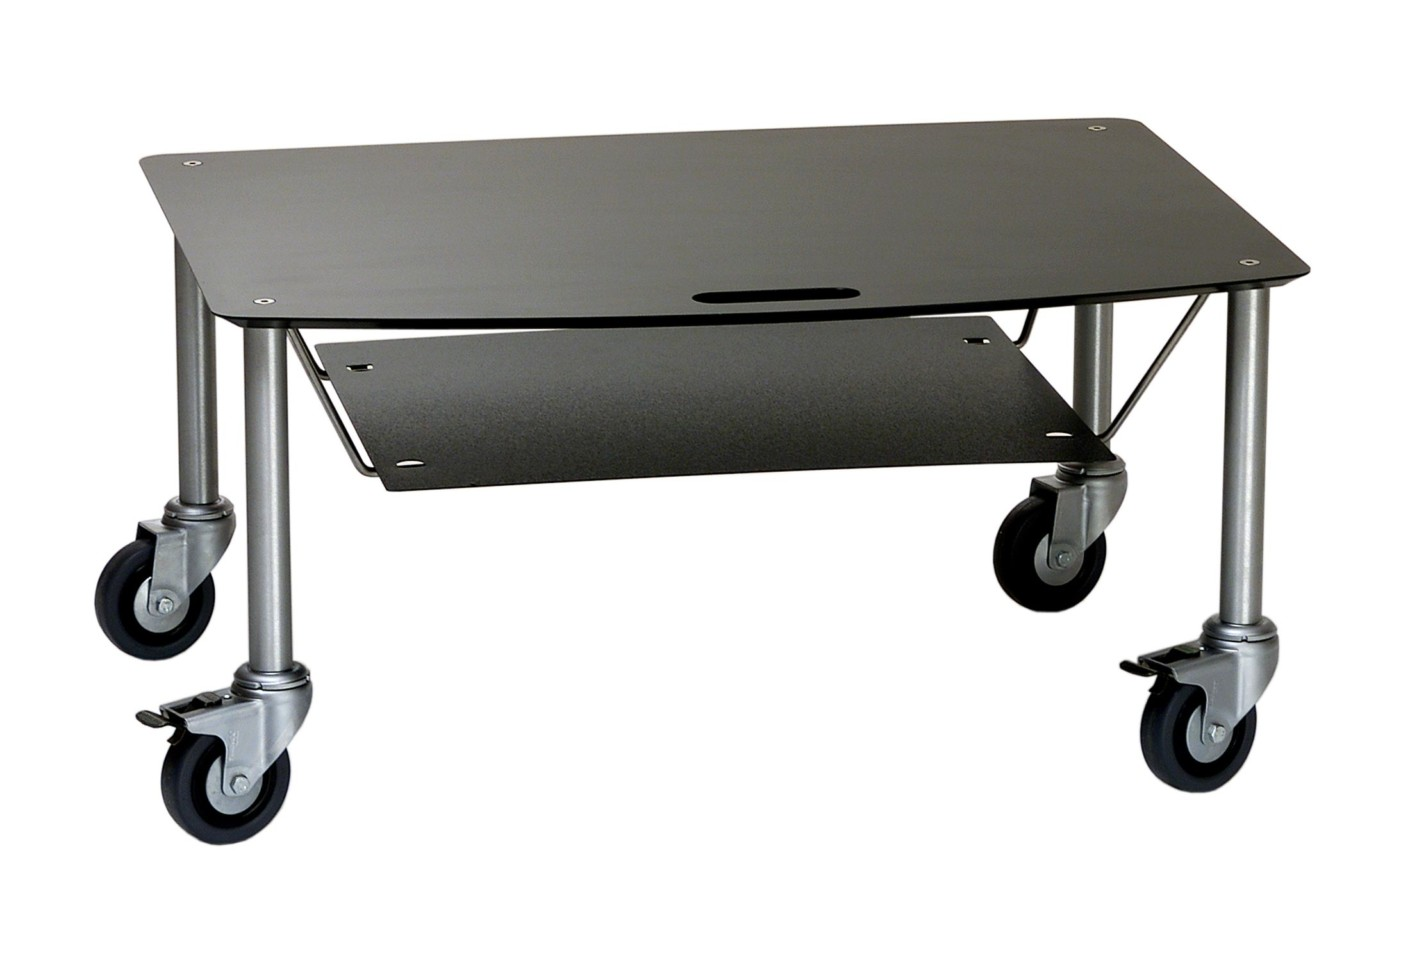 Base TV Trolley With DVD Tray By Cascando STYLEPARK